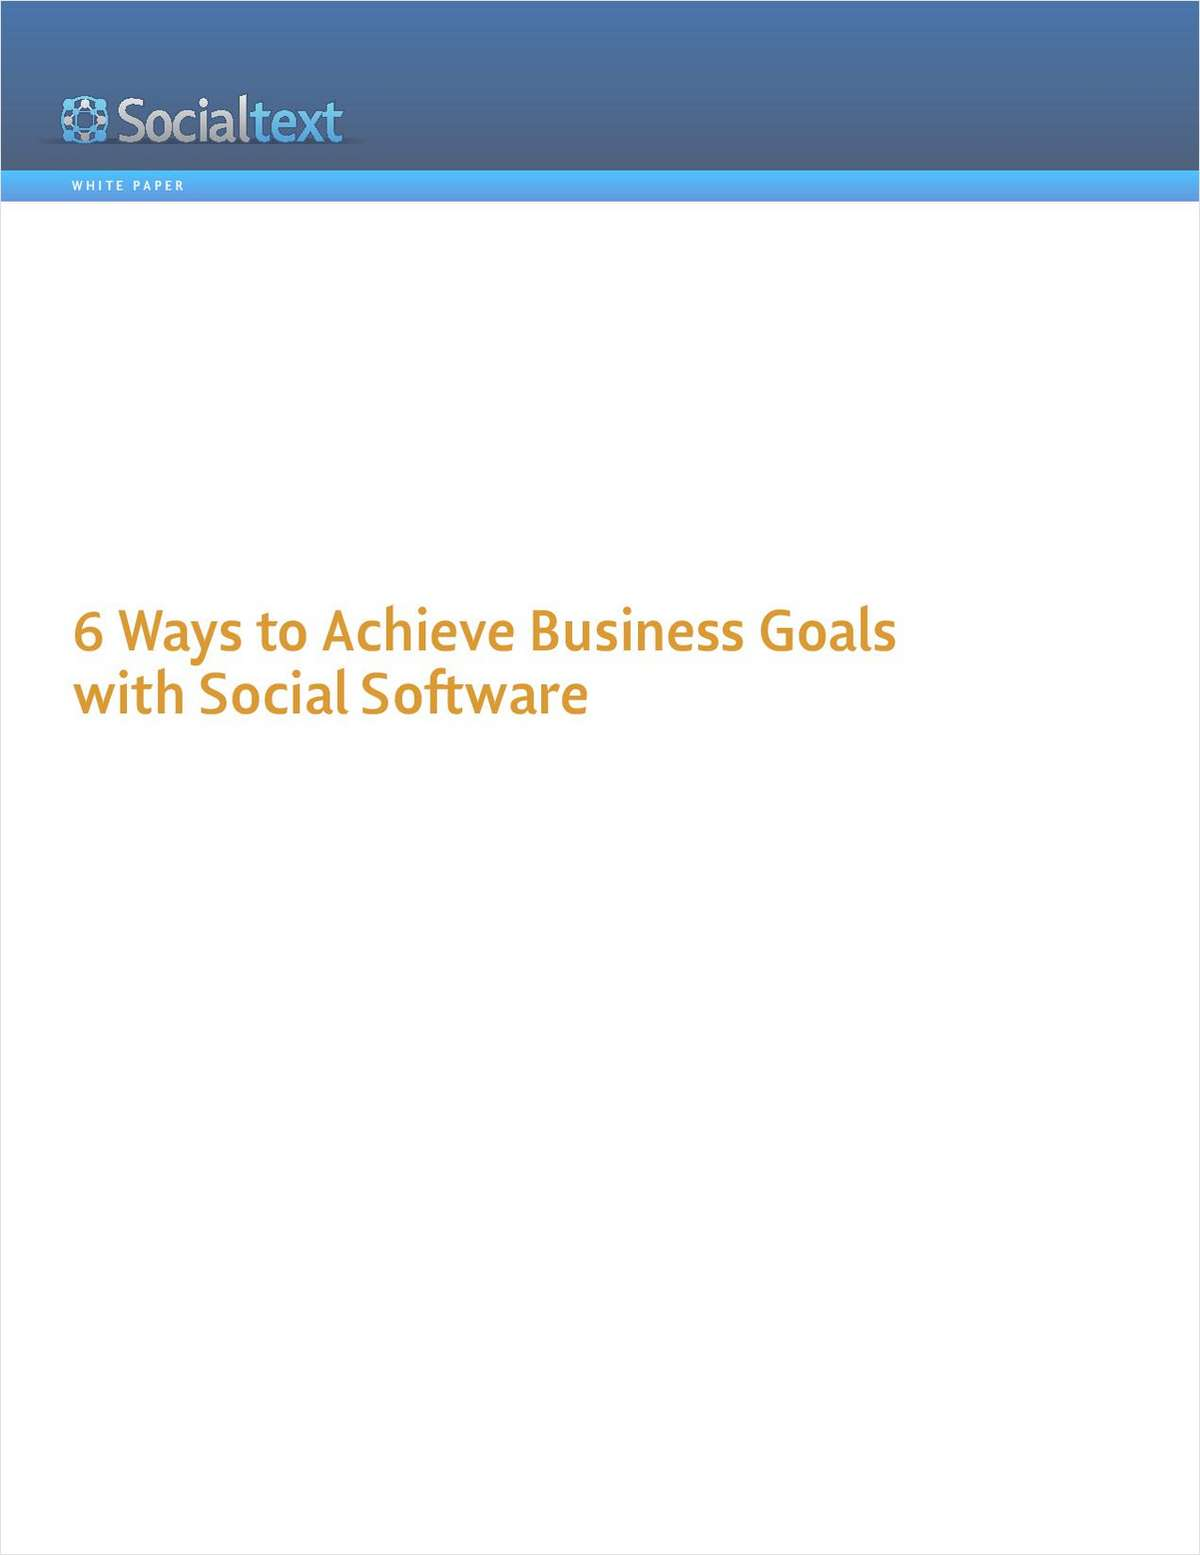 6 Ways to Achieve Business Goals with Social Software